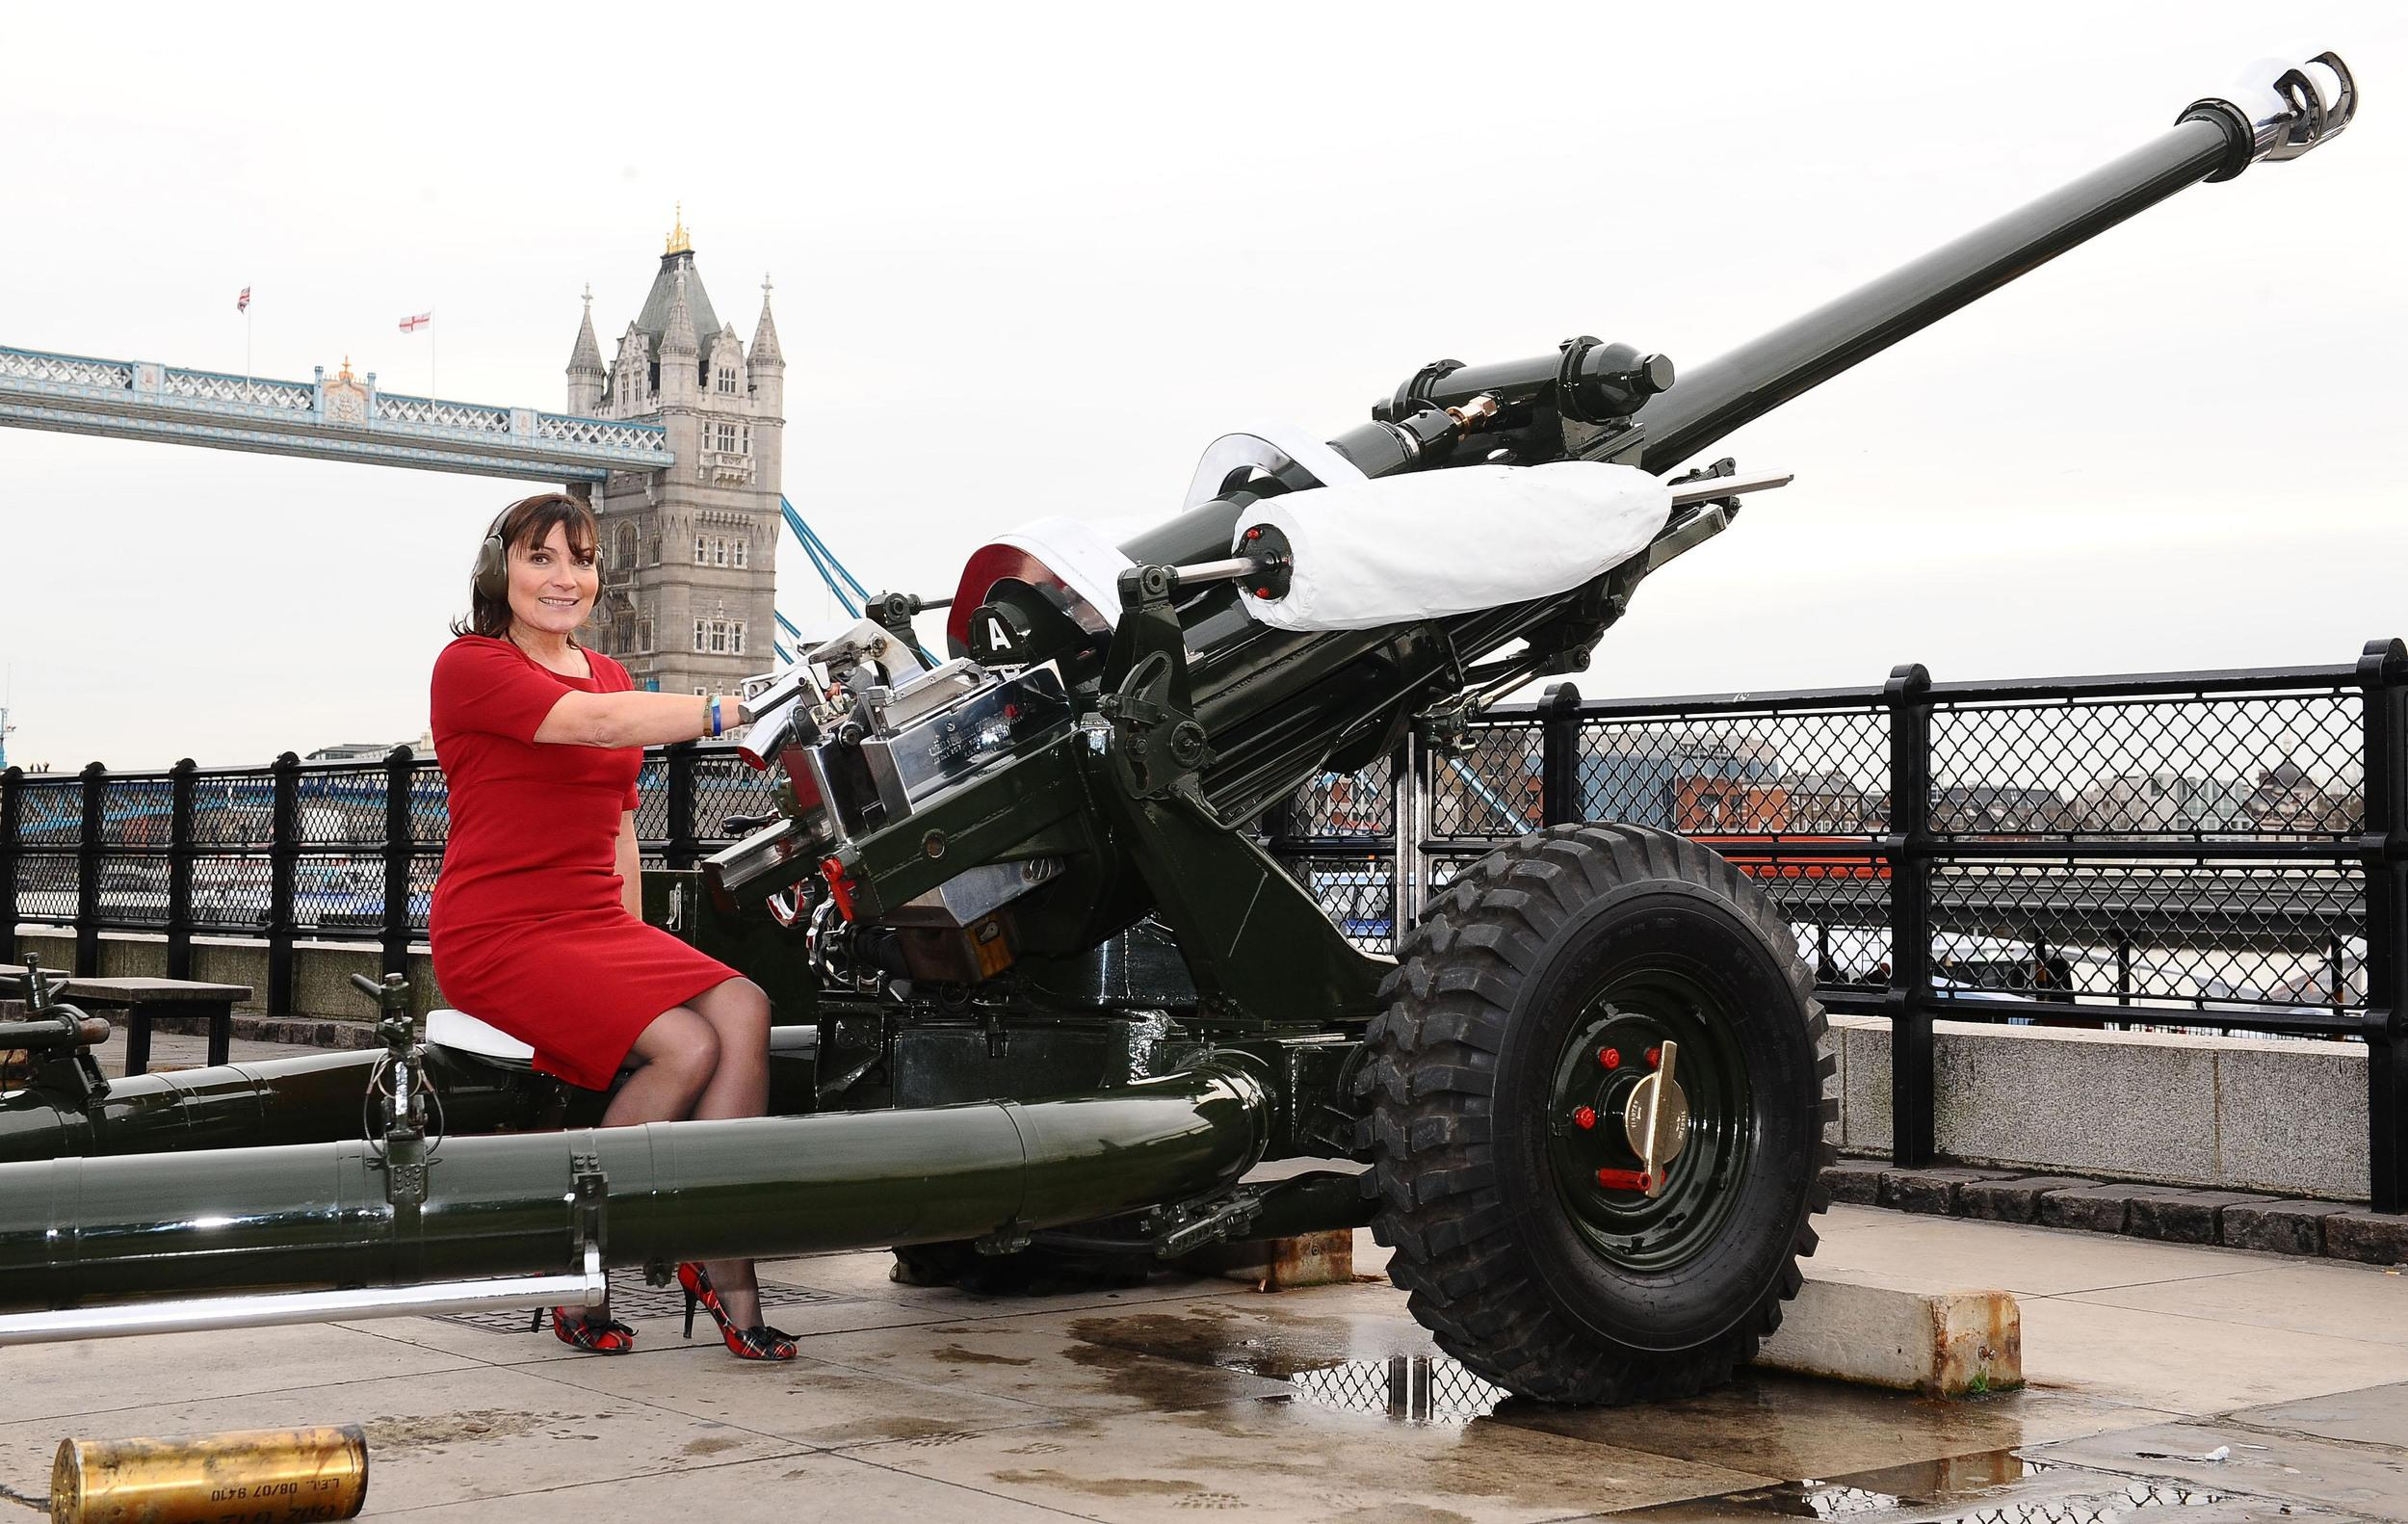 Lorraine Kelly launches the uk4u Thanks! 2011 Christmas Box campaign at the Tower of London in London, by firing the the Honourable Artillery Company Gun along side troops.